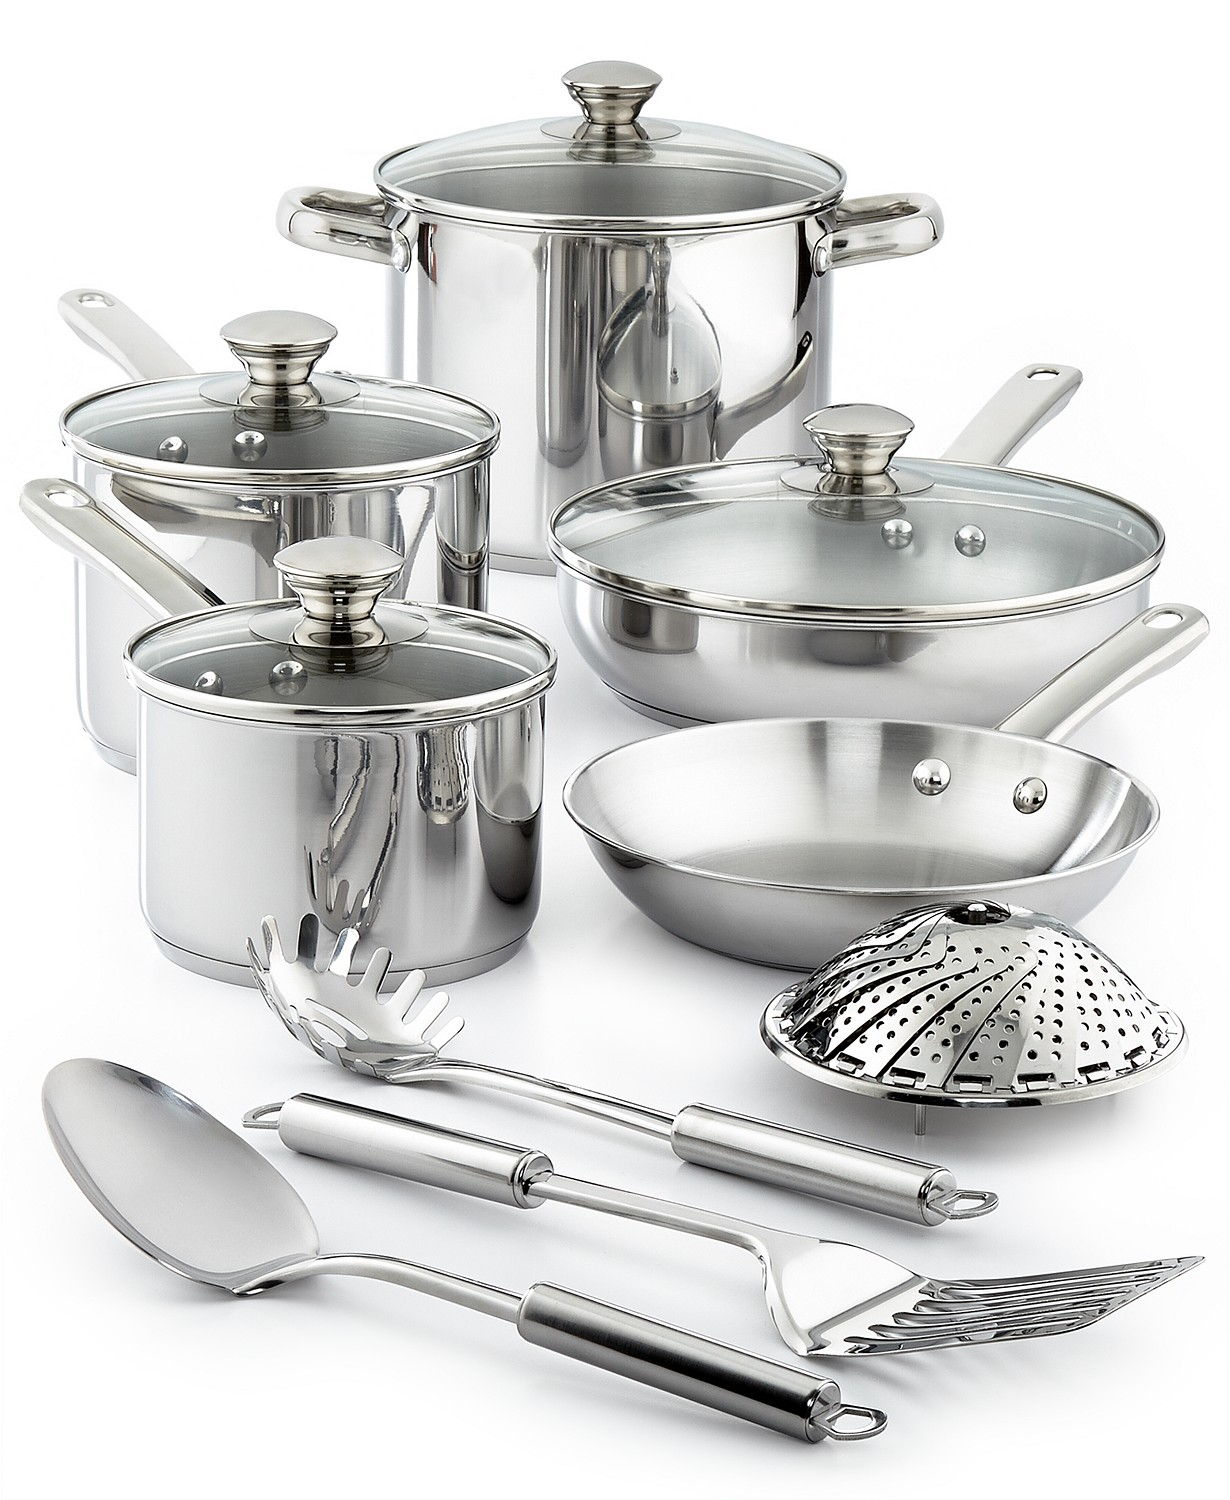 (75% OFF Deal) Stainless Steel 13-PC Cookware Set $29.99